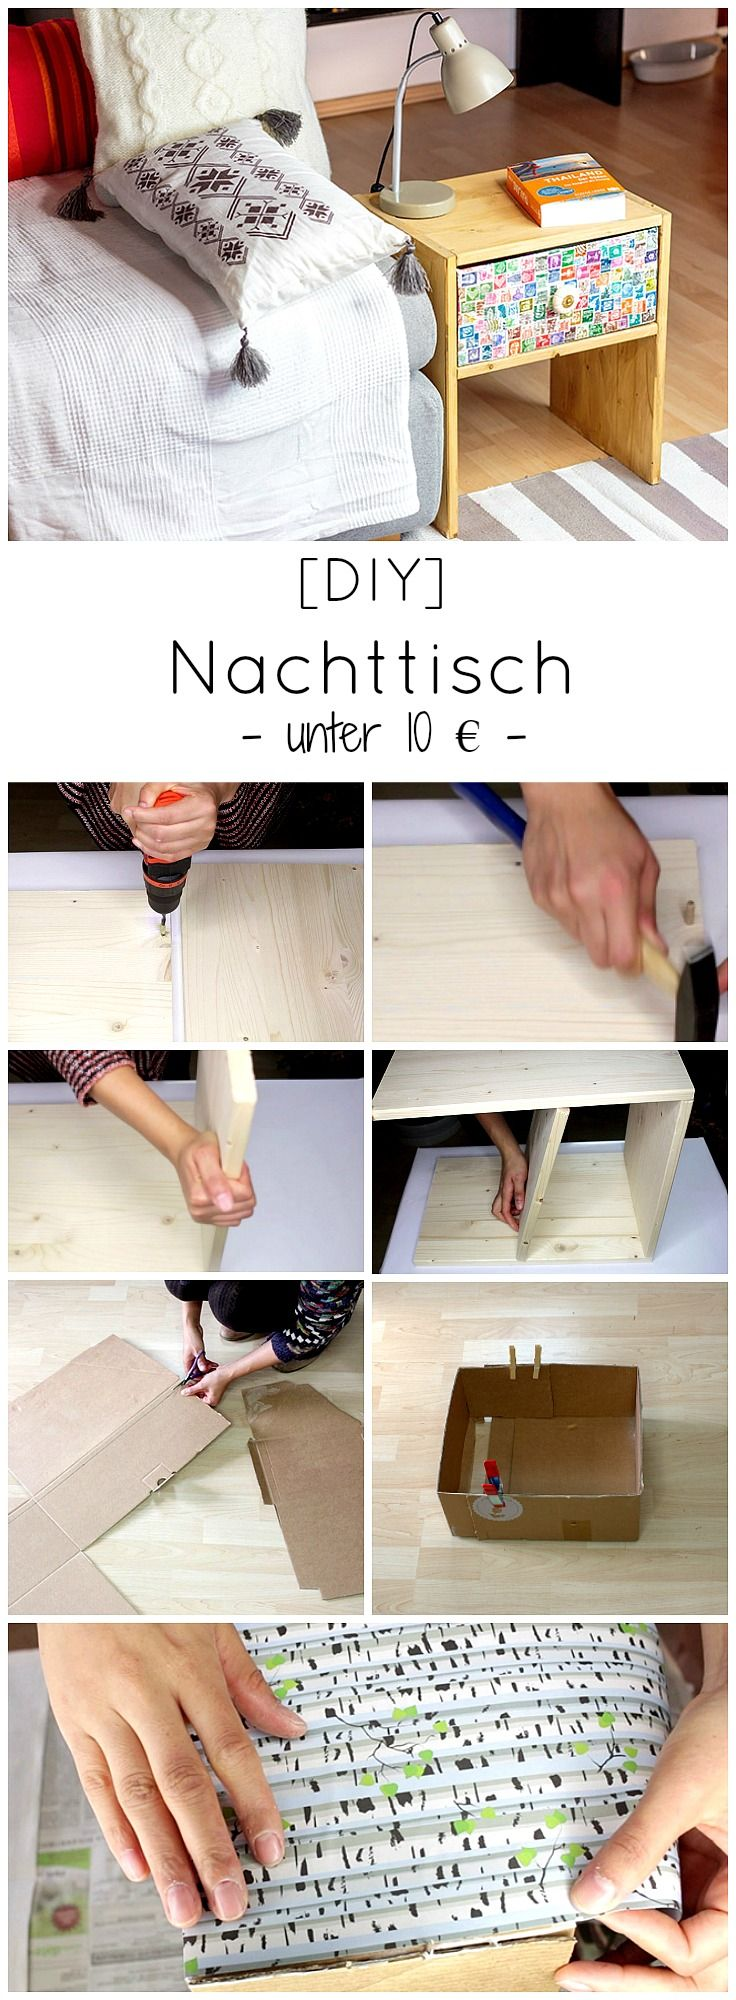 die besten 25 diy nachttisch ideen auf pinterest nachttisch selber bauen nachttisch design. Black Bedroom Furniture Sets. Home Design Ideas